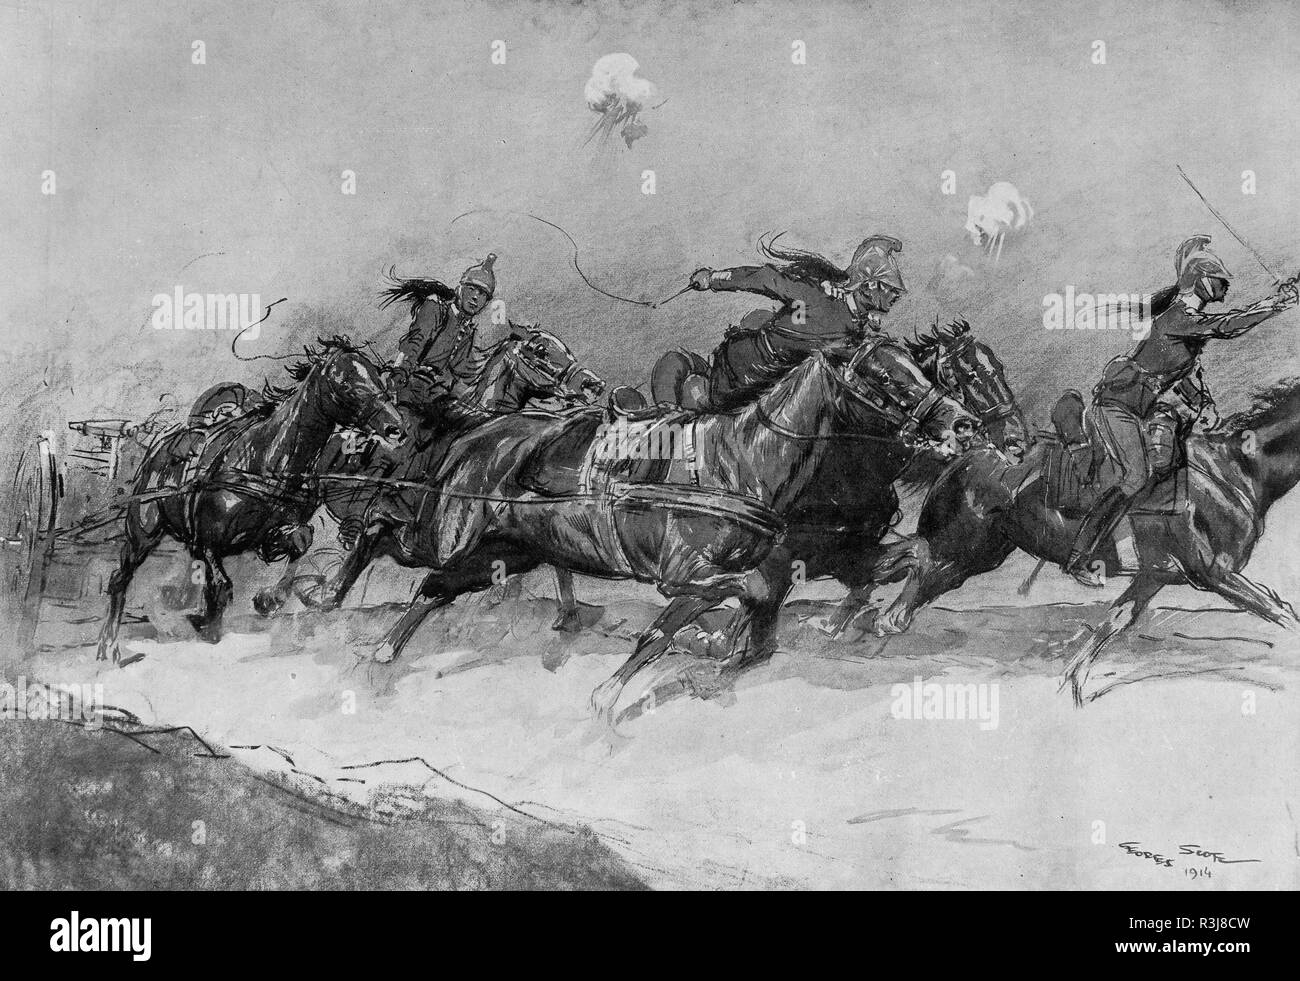 Dragons squadron charge, Illustration, October 1914, France - Stock Image